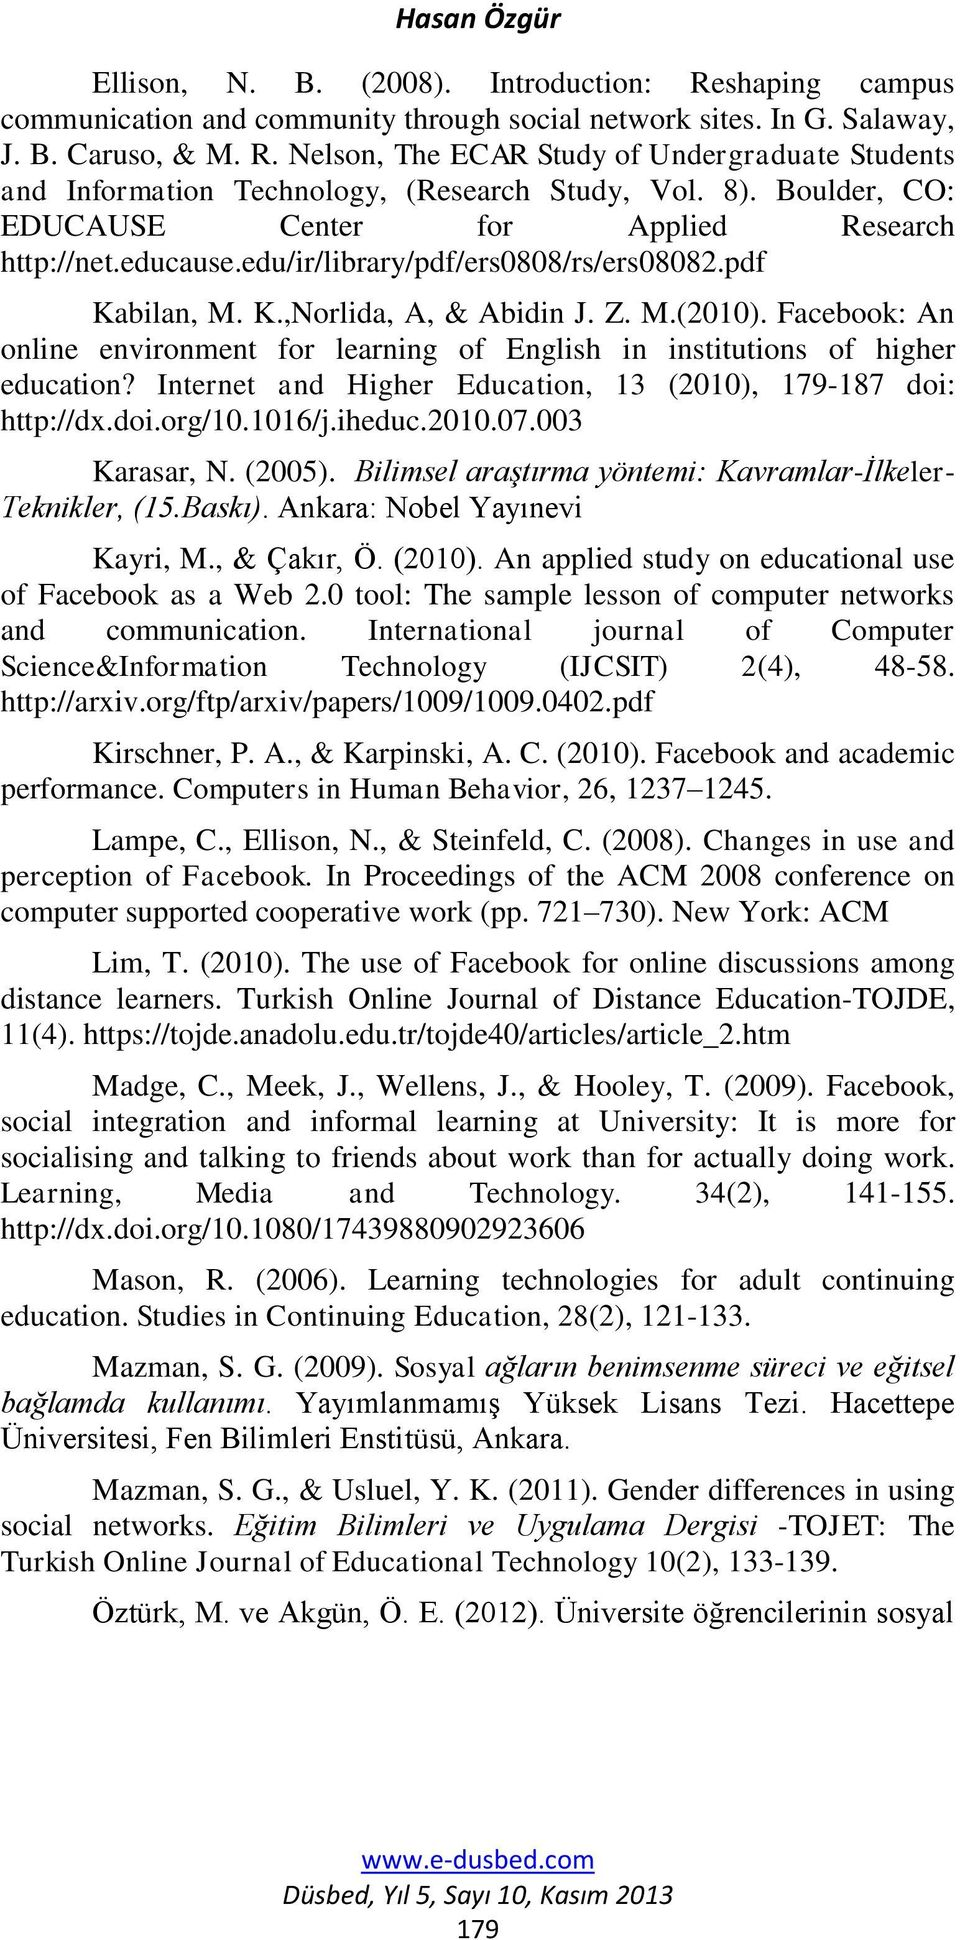 Facebook: An online environment for learning of English in institutions of higher education? Internet and Higher Education, 13 (2010), 179-187 doi: http://dx.doi.org/10.1016/j.iheduc.2010.07.